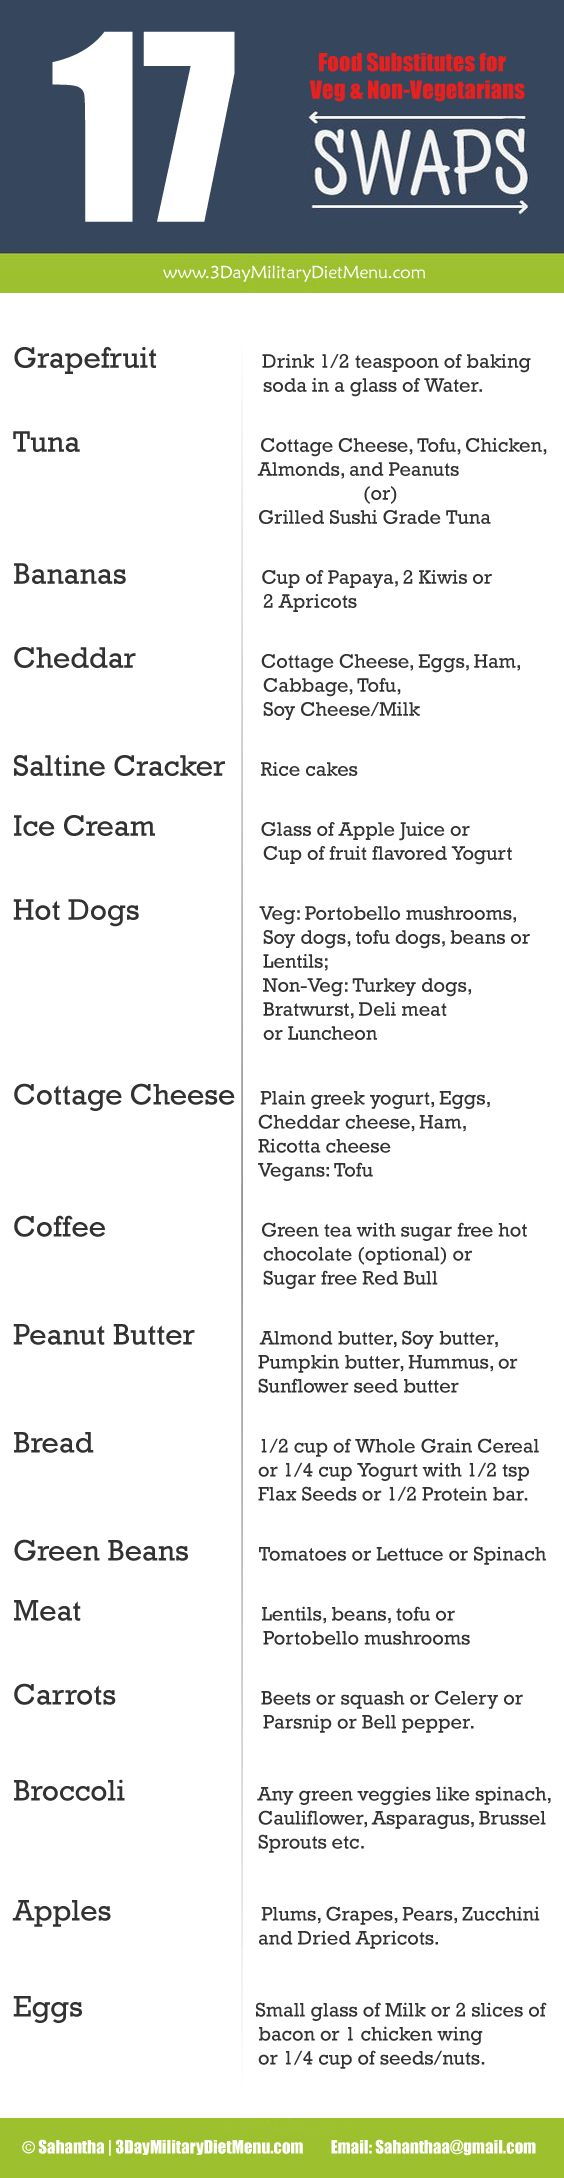 Military Diet Substitutions: Find the list of food substitutes allowed on the 3 day military diet plan.